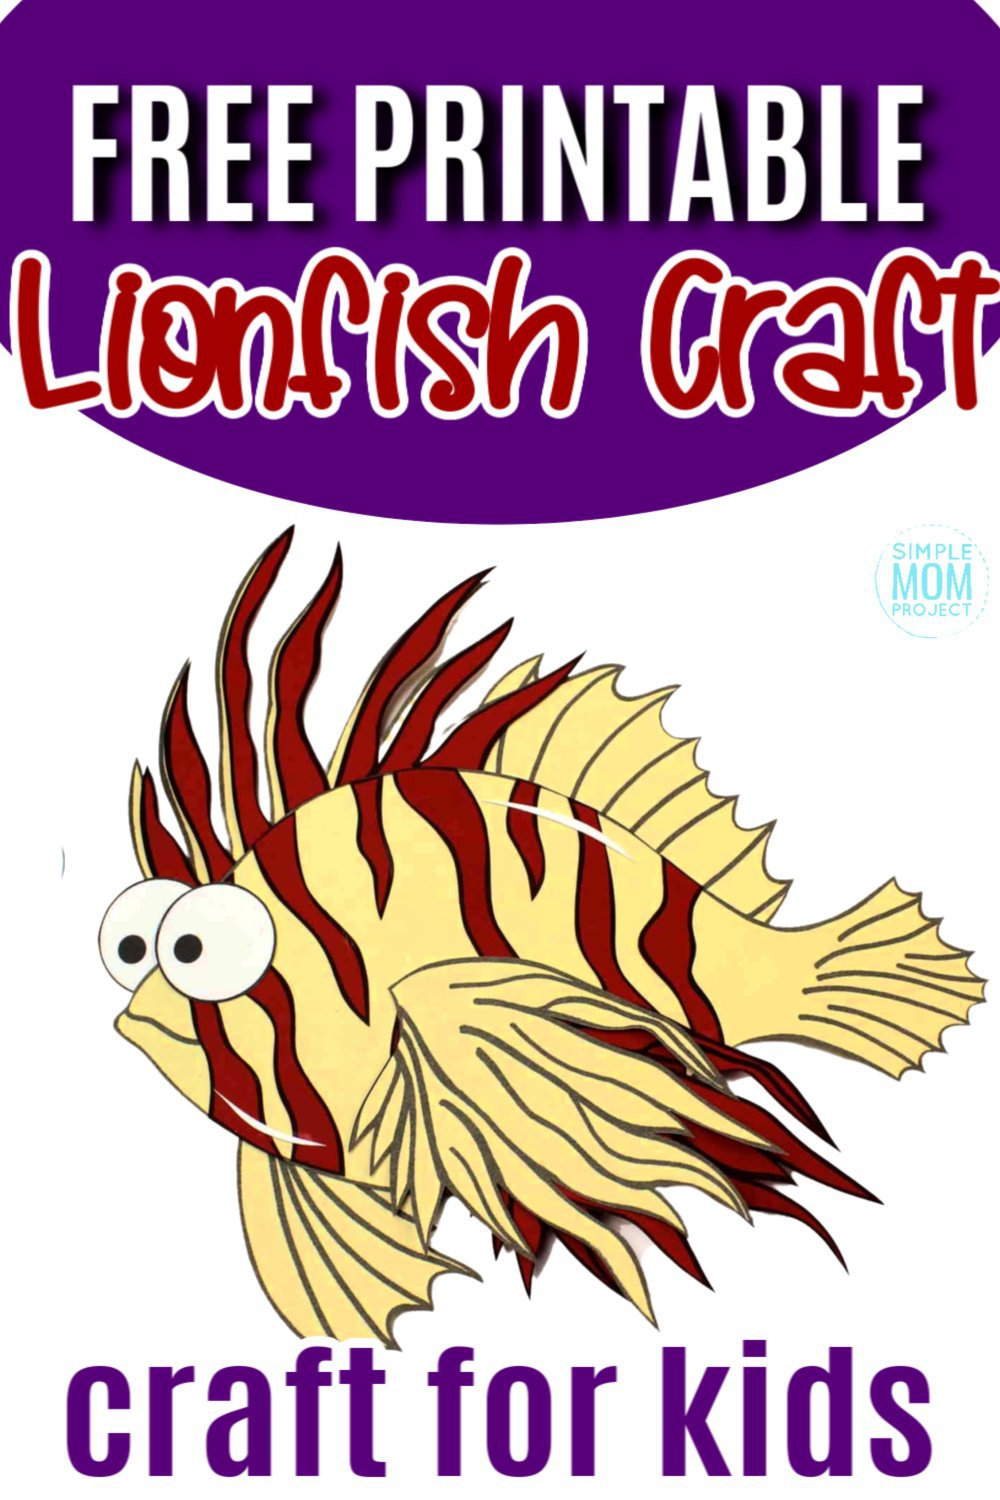 Fish crafts are always perfect for the summer! But what about a lion fish craft? How cool!? Use the free printable lion fish template to make this easy, paper ocean animal friend! He is perfect for kids of all ages including preschoolers and toddlers. #lionfish #lionfishcraft #fishcrafs #oceananimal #oceananimalcrafts